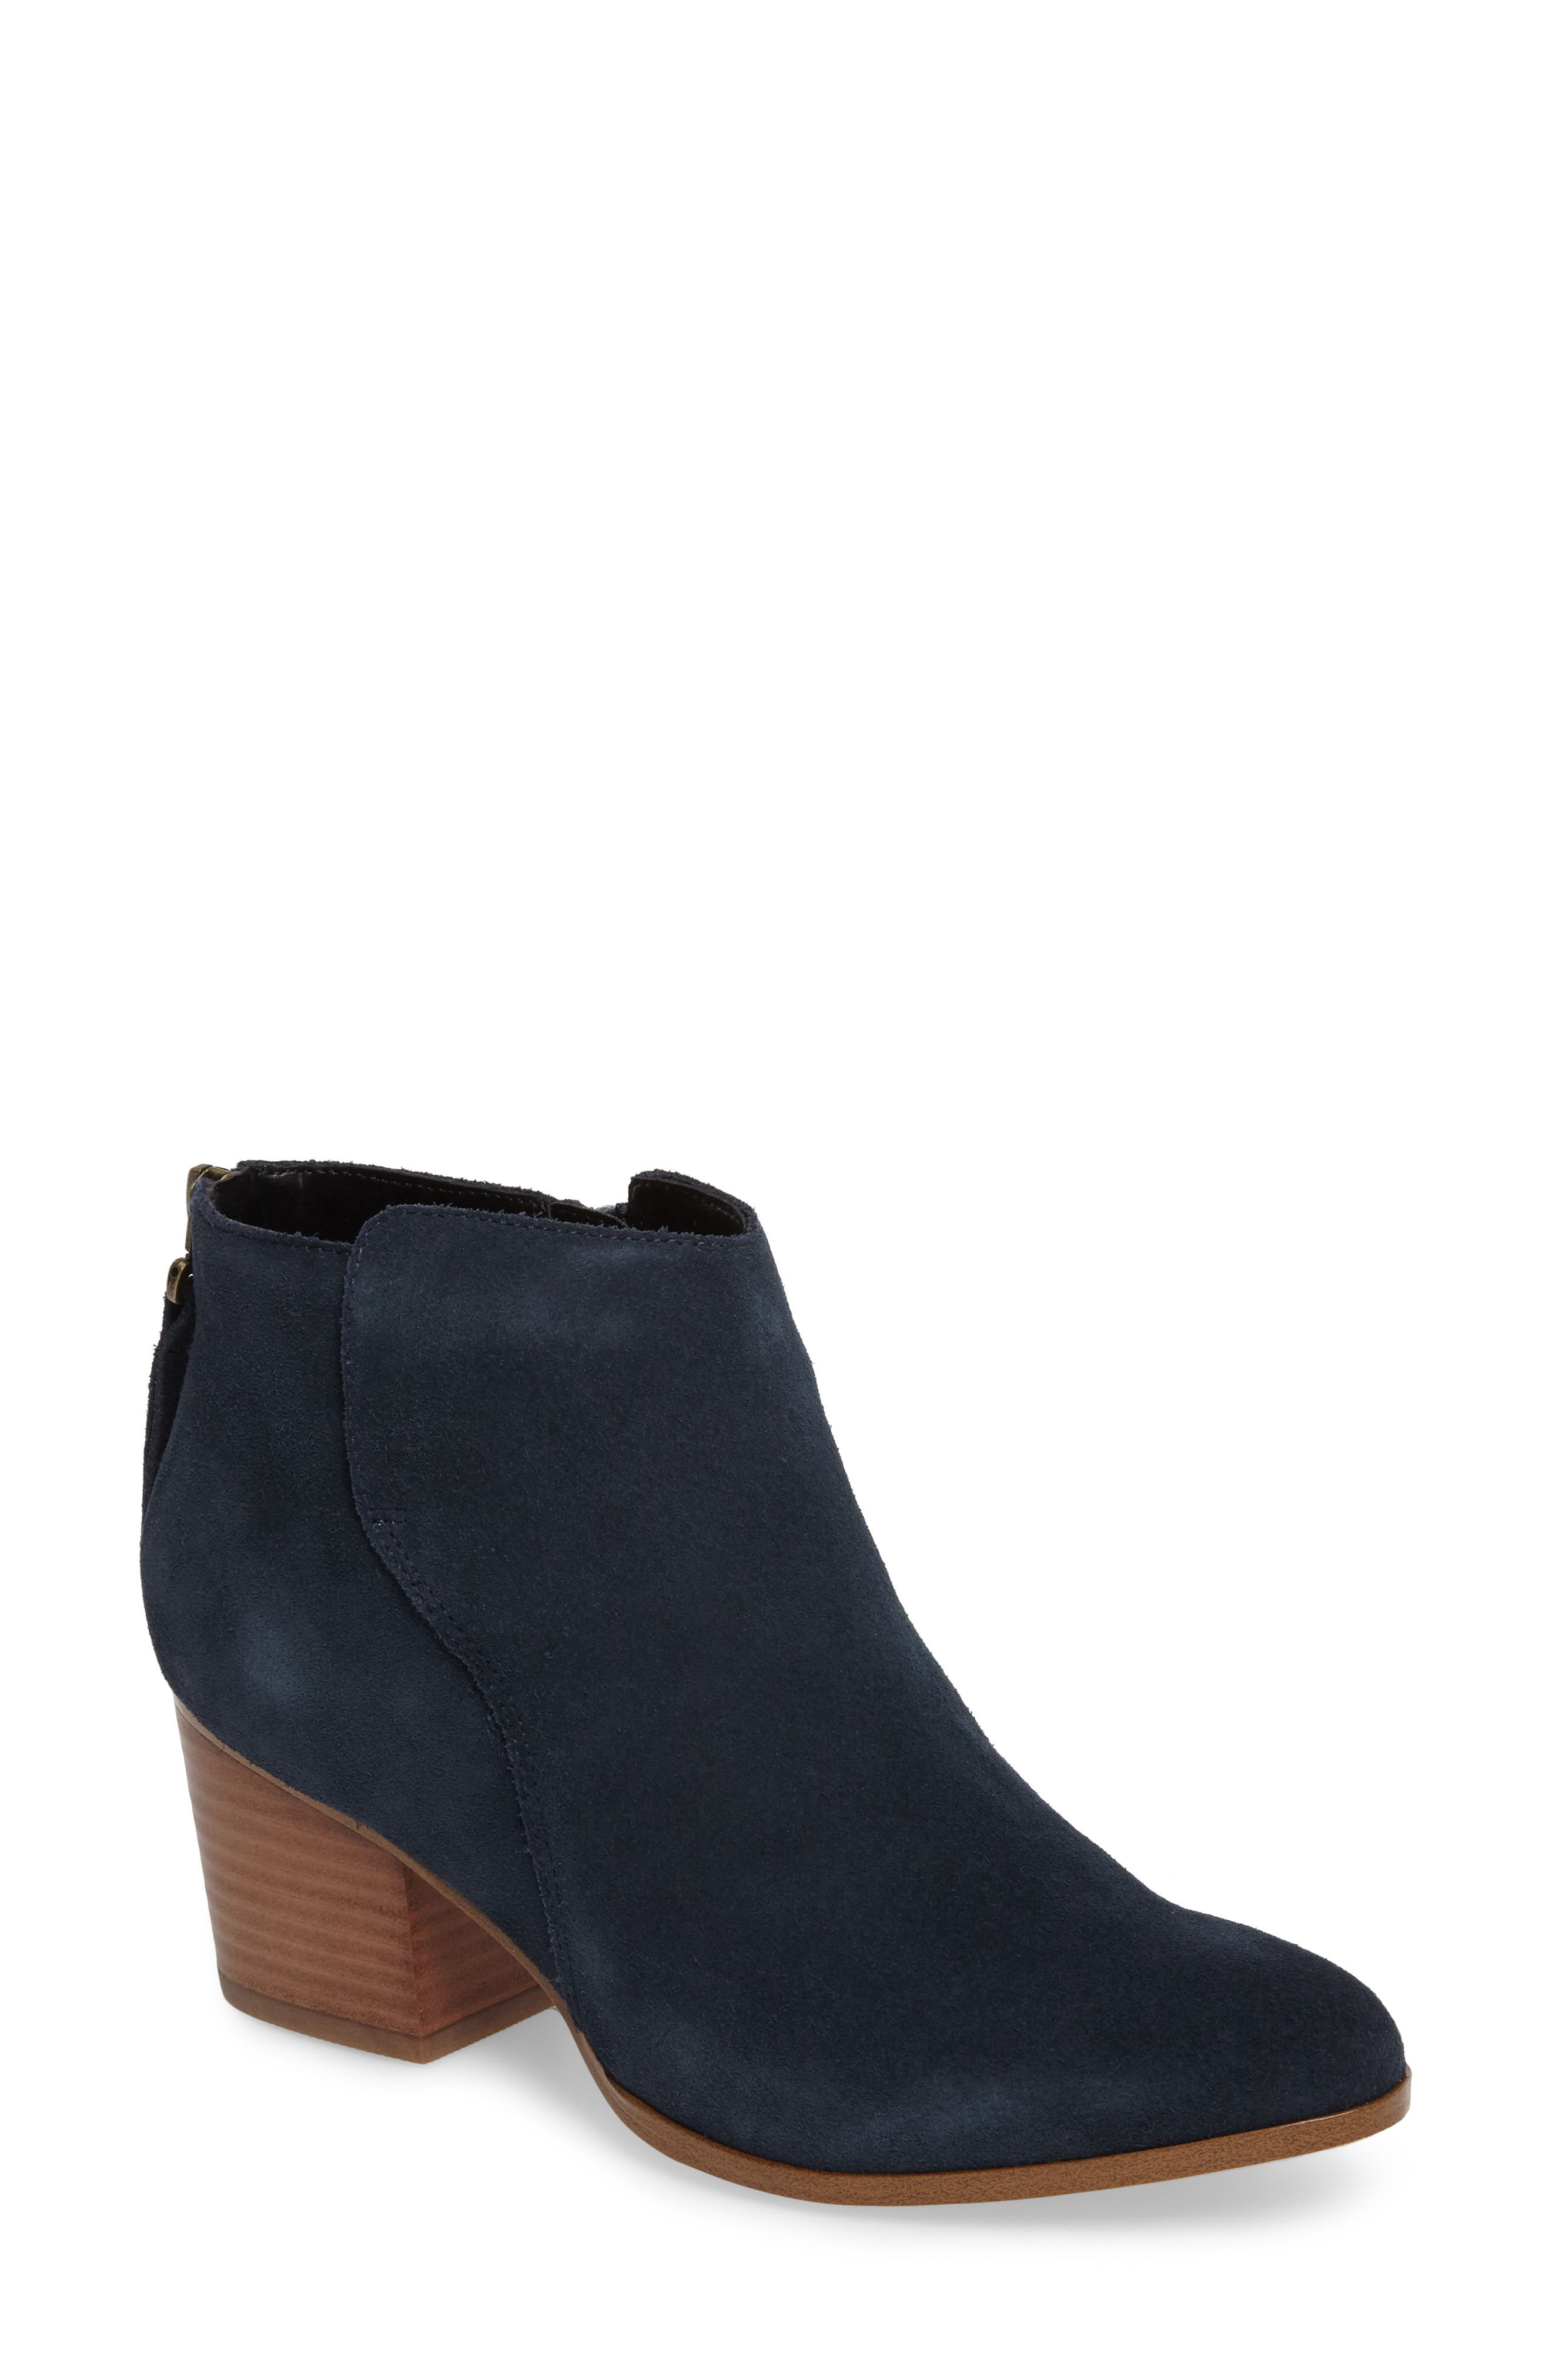 Alternate Image 1 Selected - Sole Society River Bootie (Women)